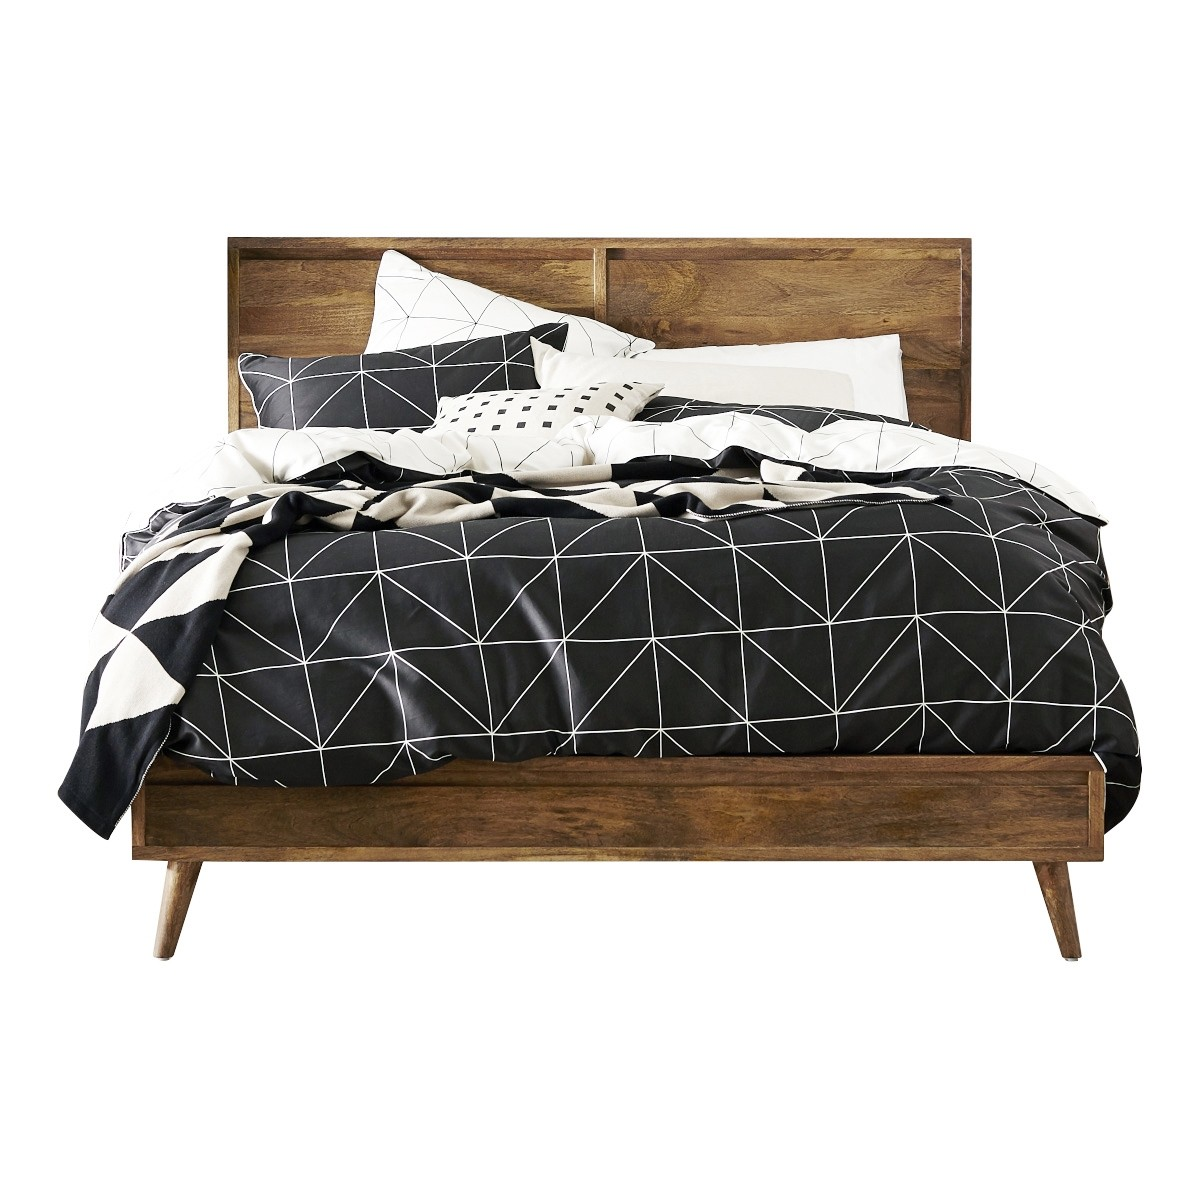 Elvina Mango Wood Bed, Queen